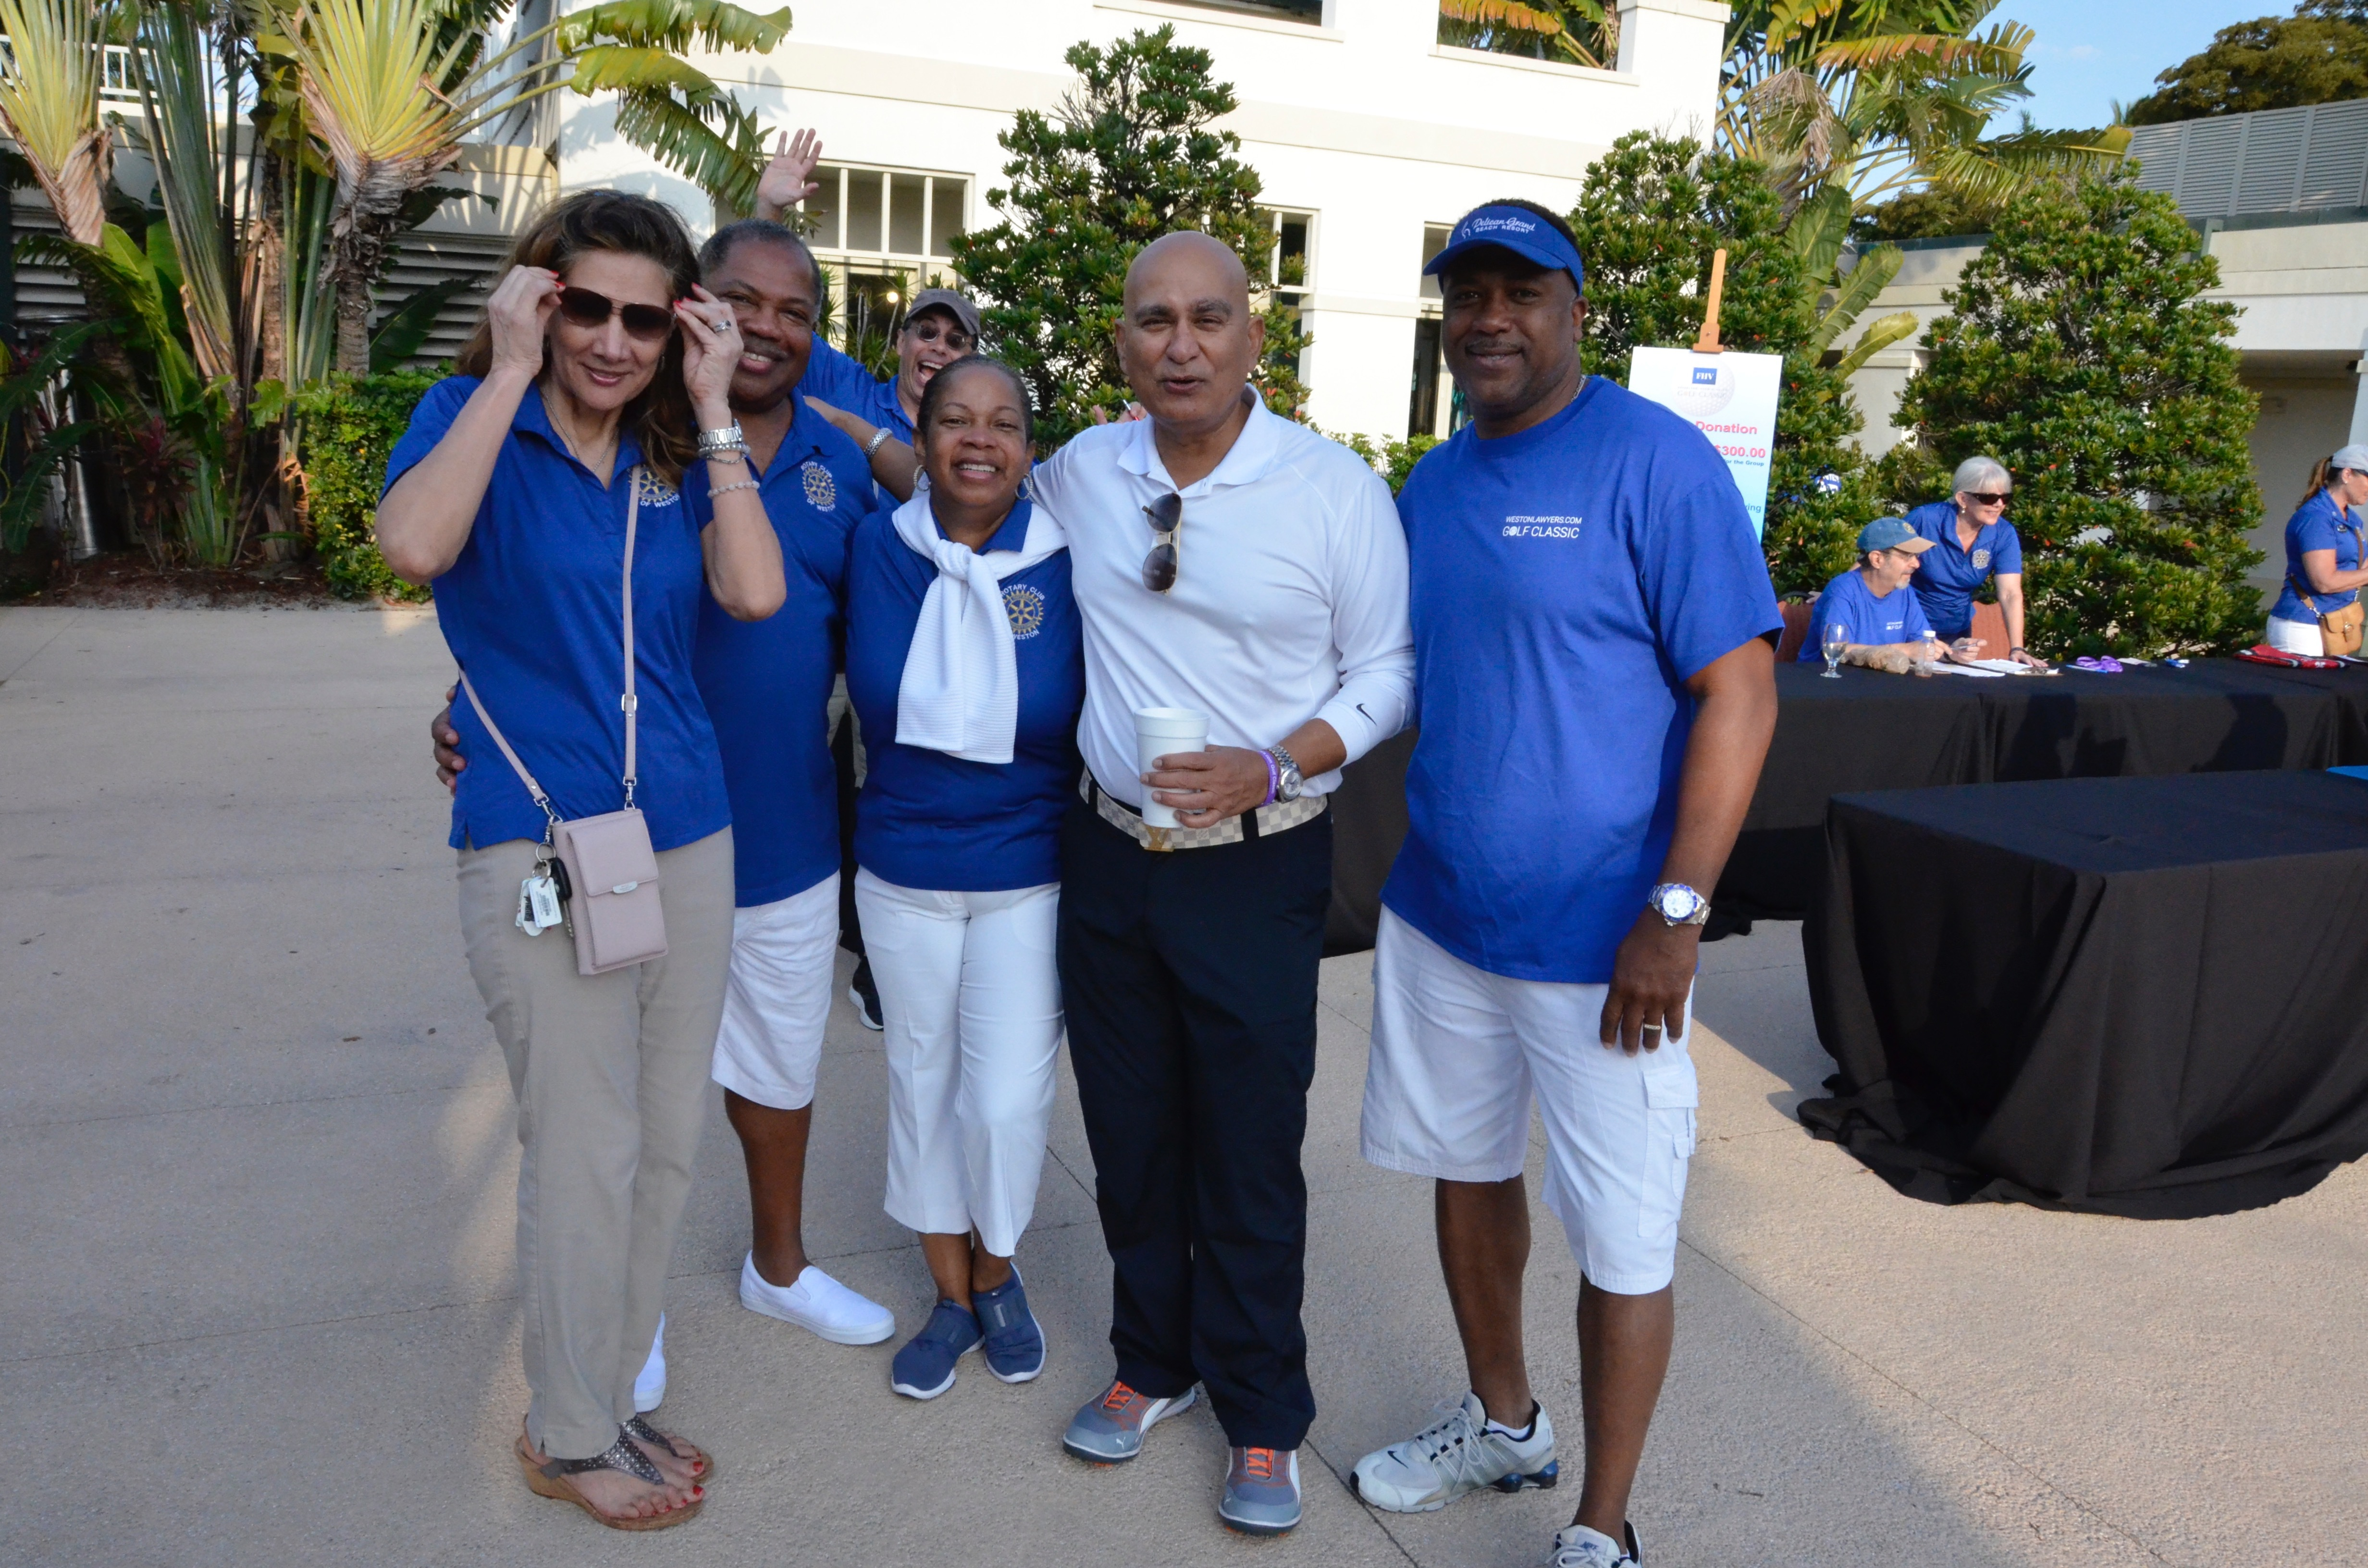 33rd Annual Rotary Golf Classic Sponsored by FHVLEGAL.COM gallery image #92